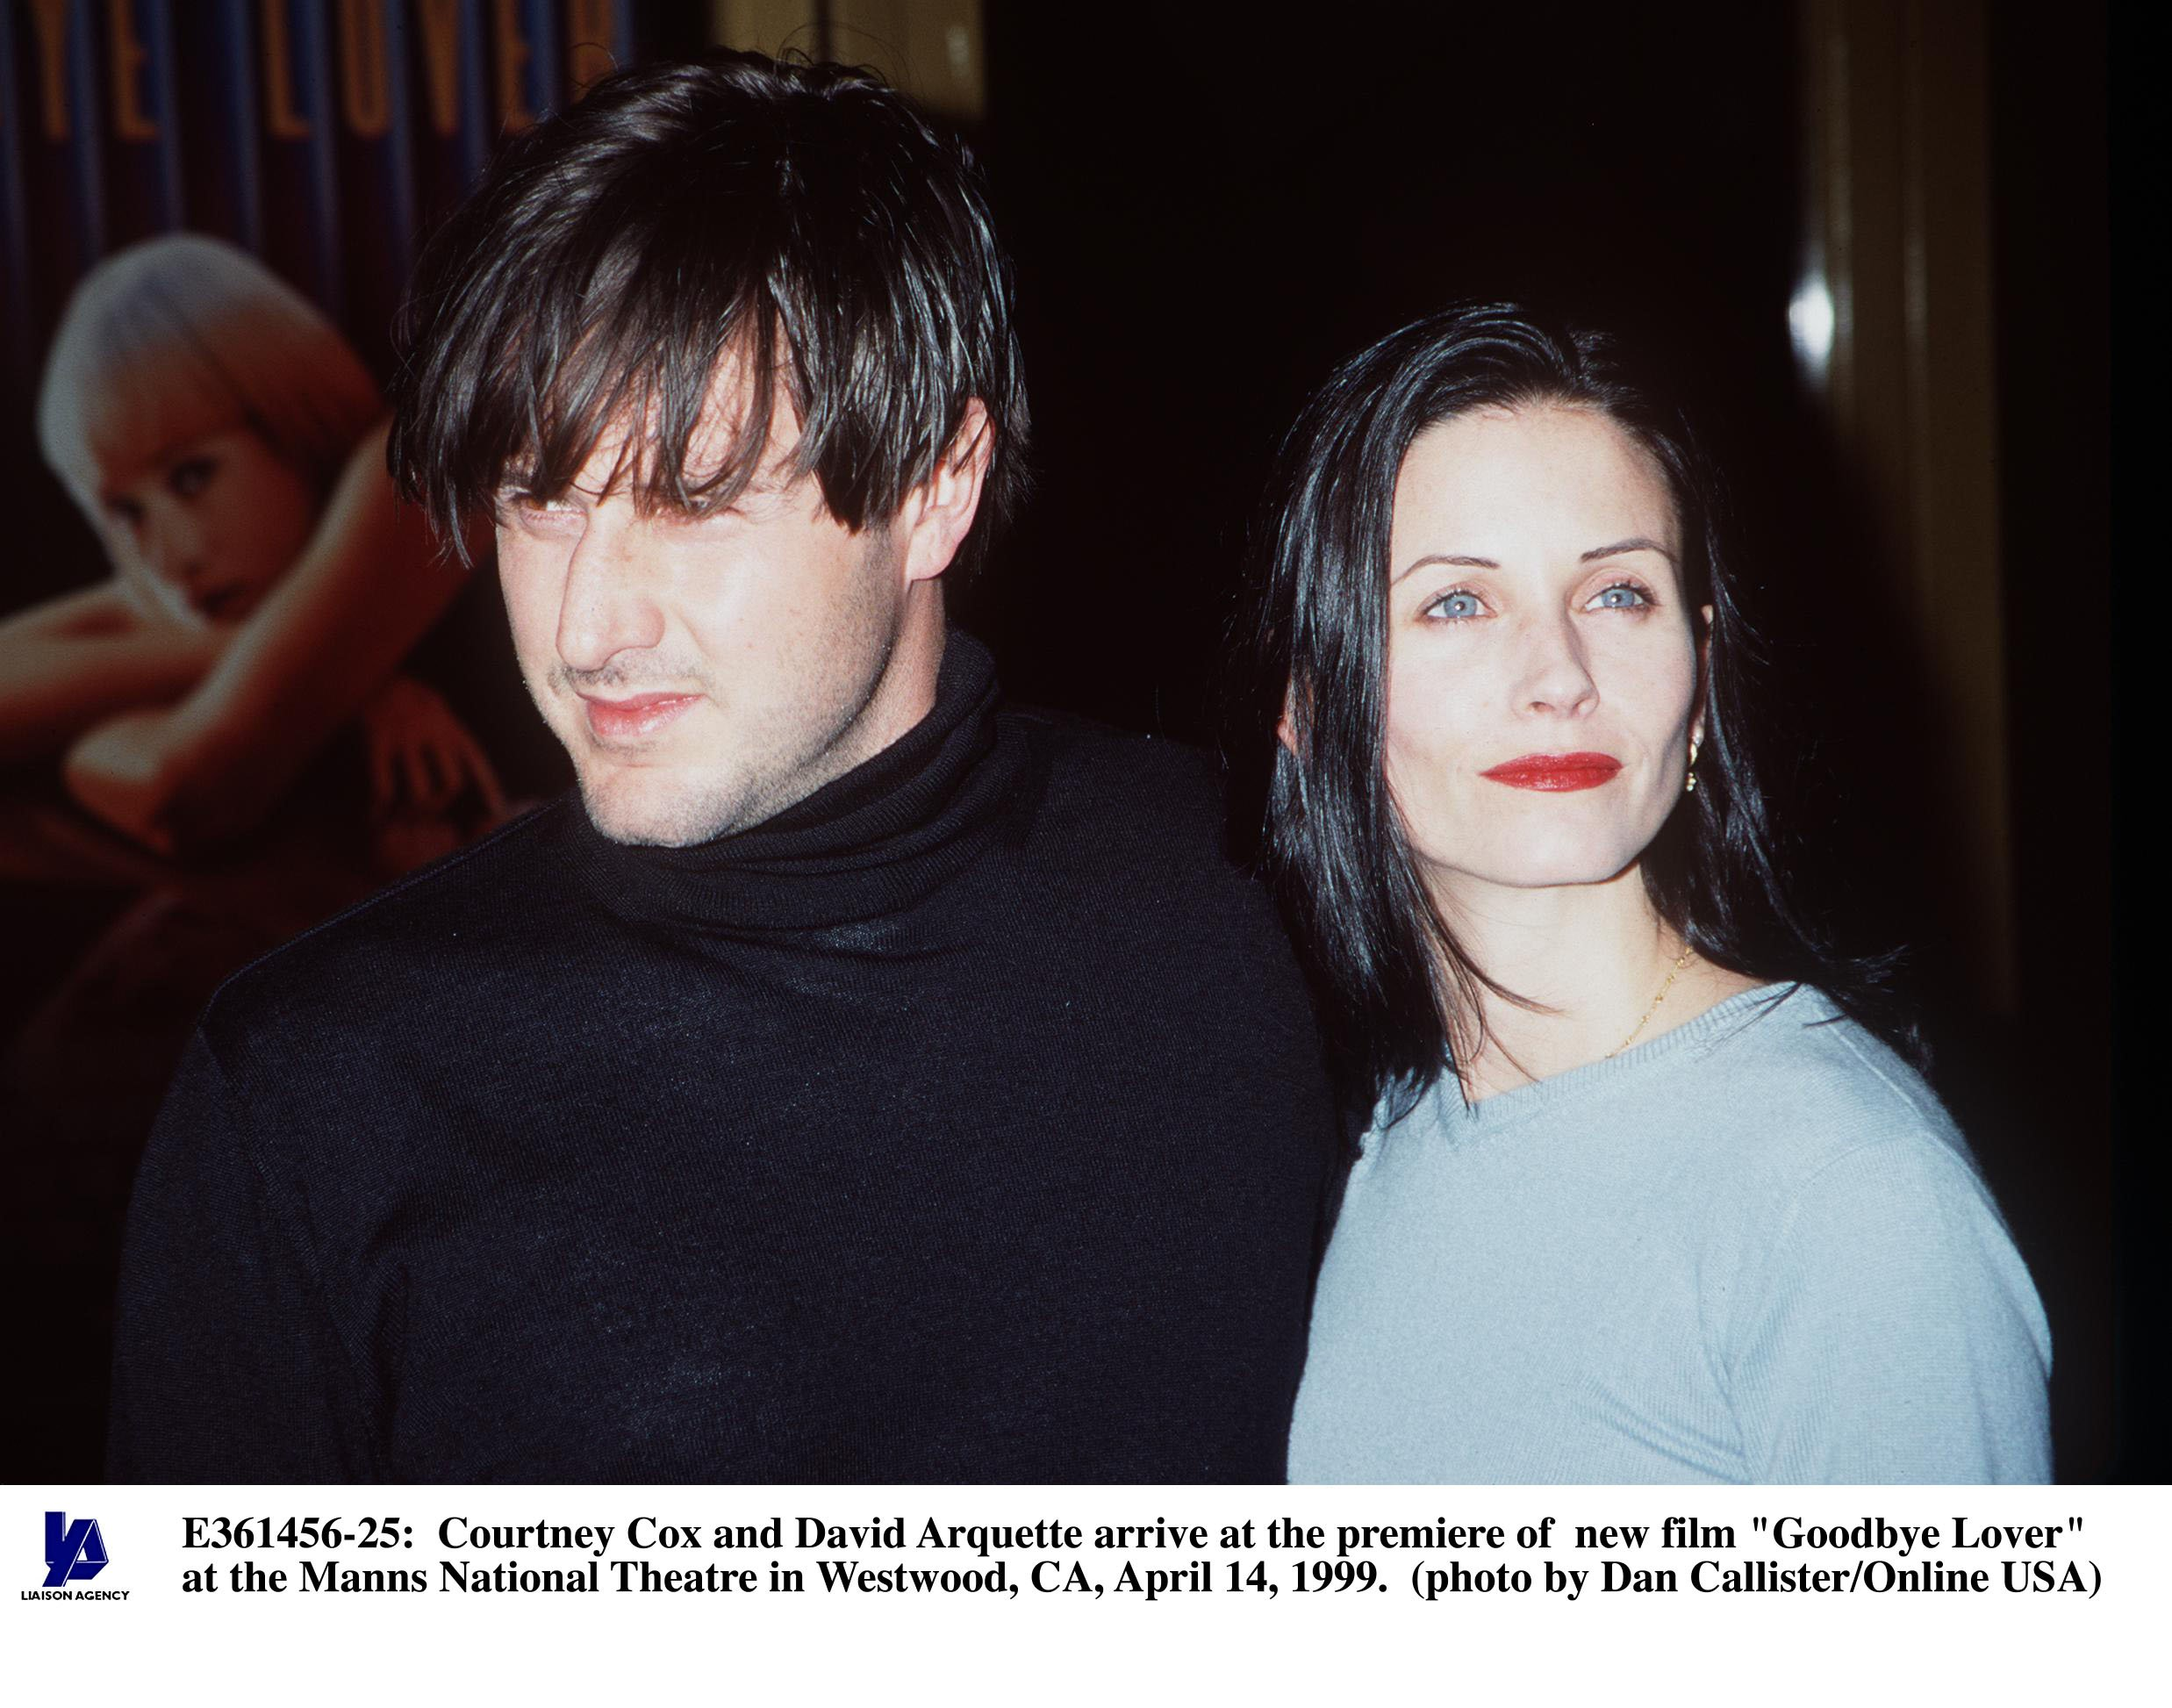 """Courteney Cox and DAvid Arquette at the premier of """"Goodbye Lover"""" in Westwood, California on April 14, 1999 